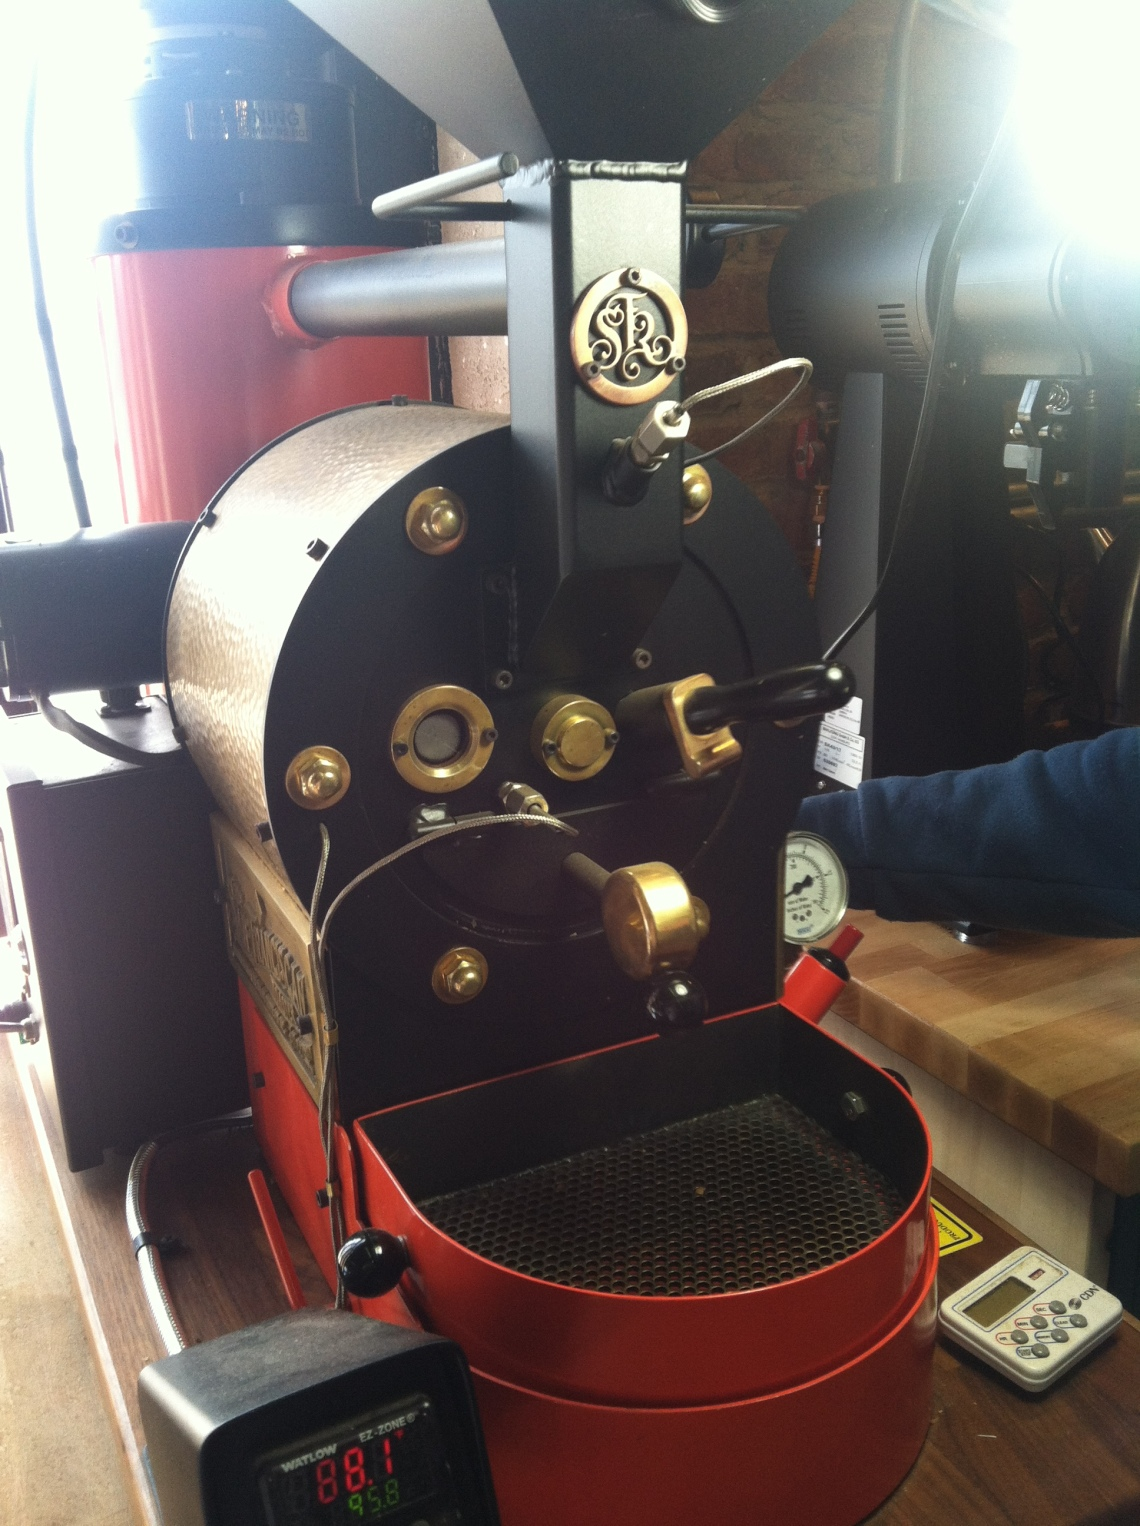 Not a sample roaster, just a really cool mini version of a drum roaster